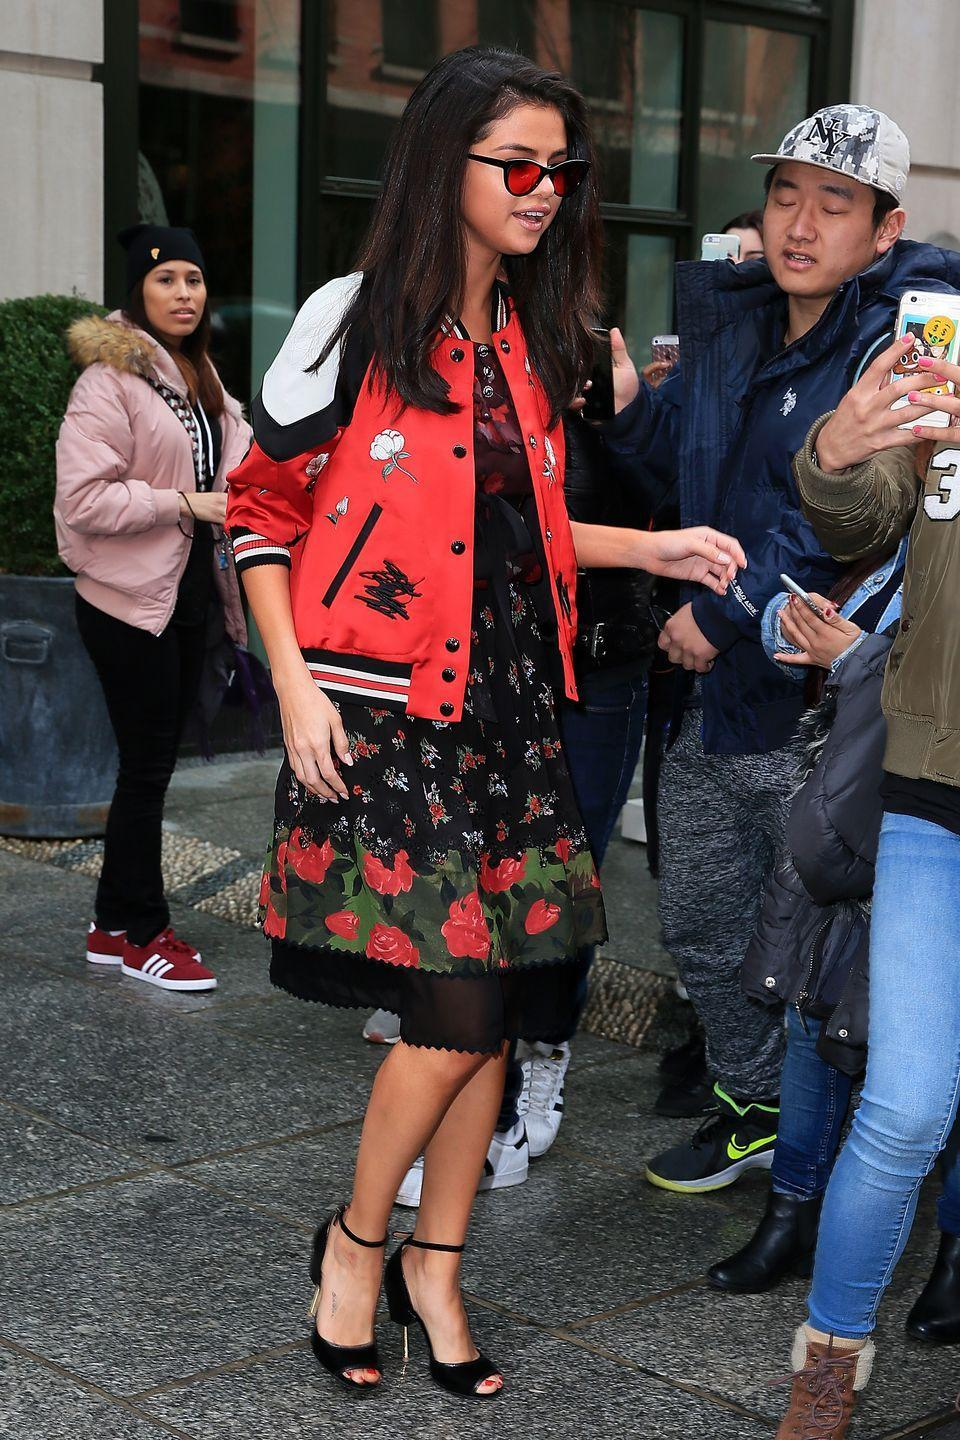 <p>The singer sported a floral-printed midi-dress and red bomber jacket for an appearance in New York City, February 2017</p>